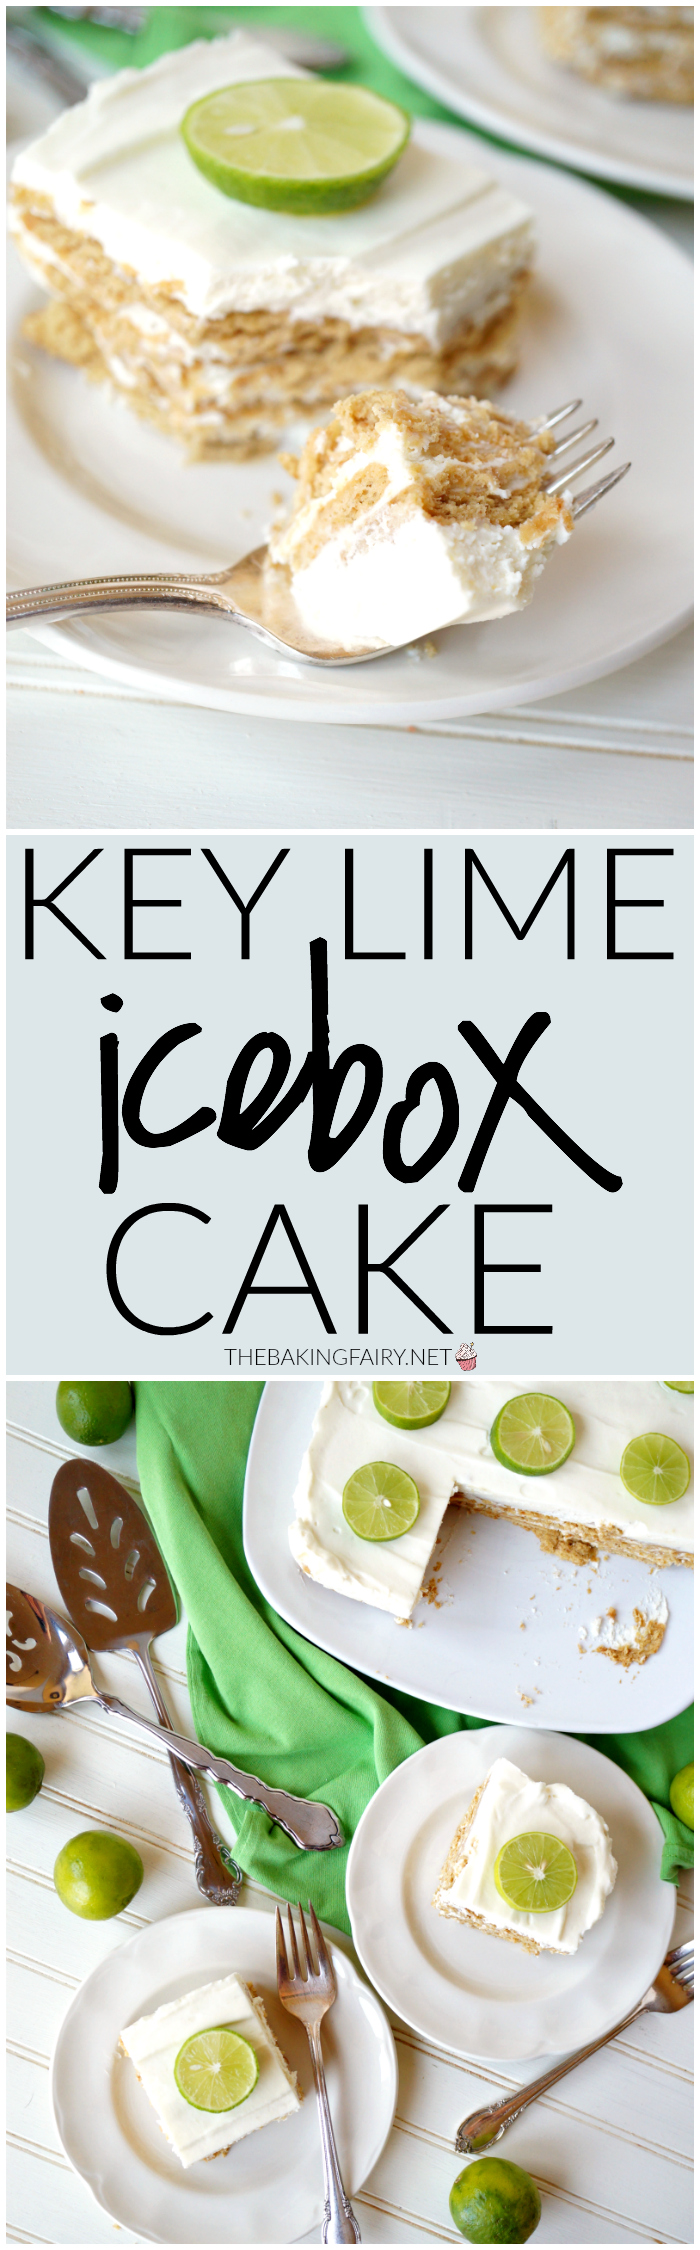 Key West & key lime icebox cake | The Baking Fairy